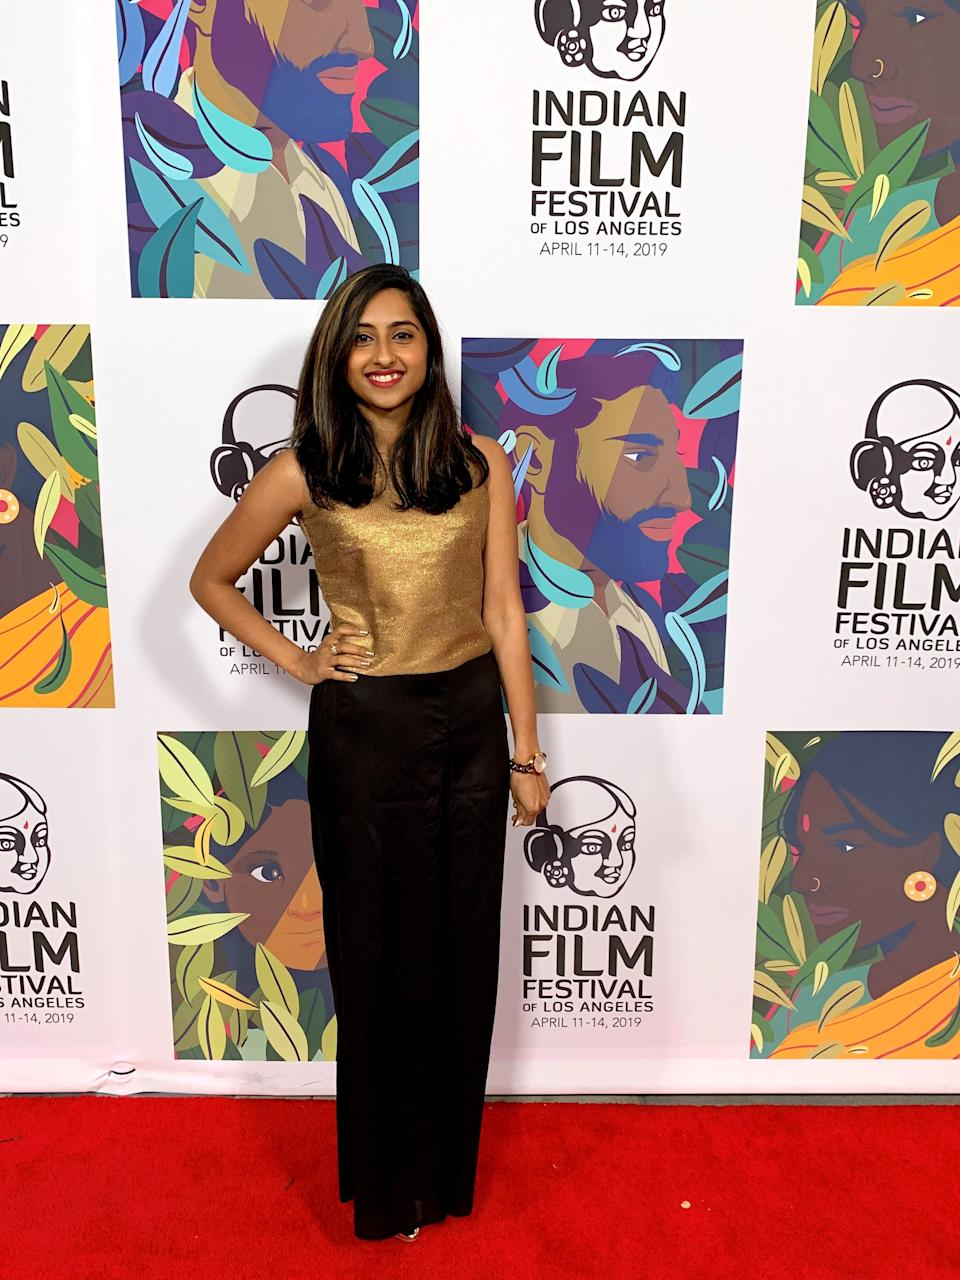 Chennai-born, LA-based filmmaker and Producer, Sonali Sundararaj